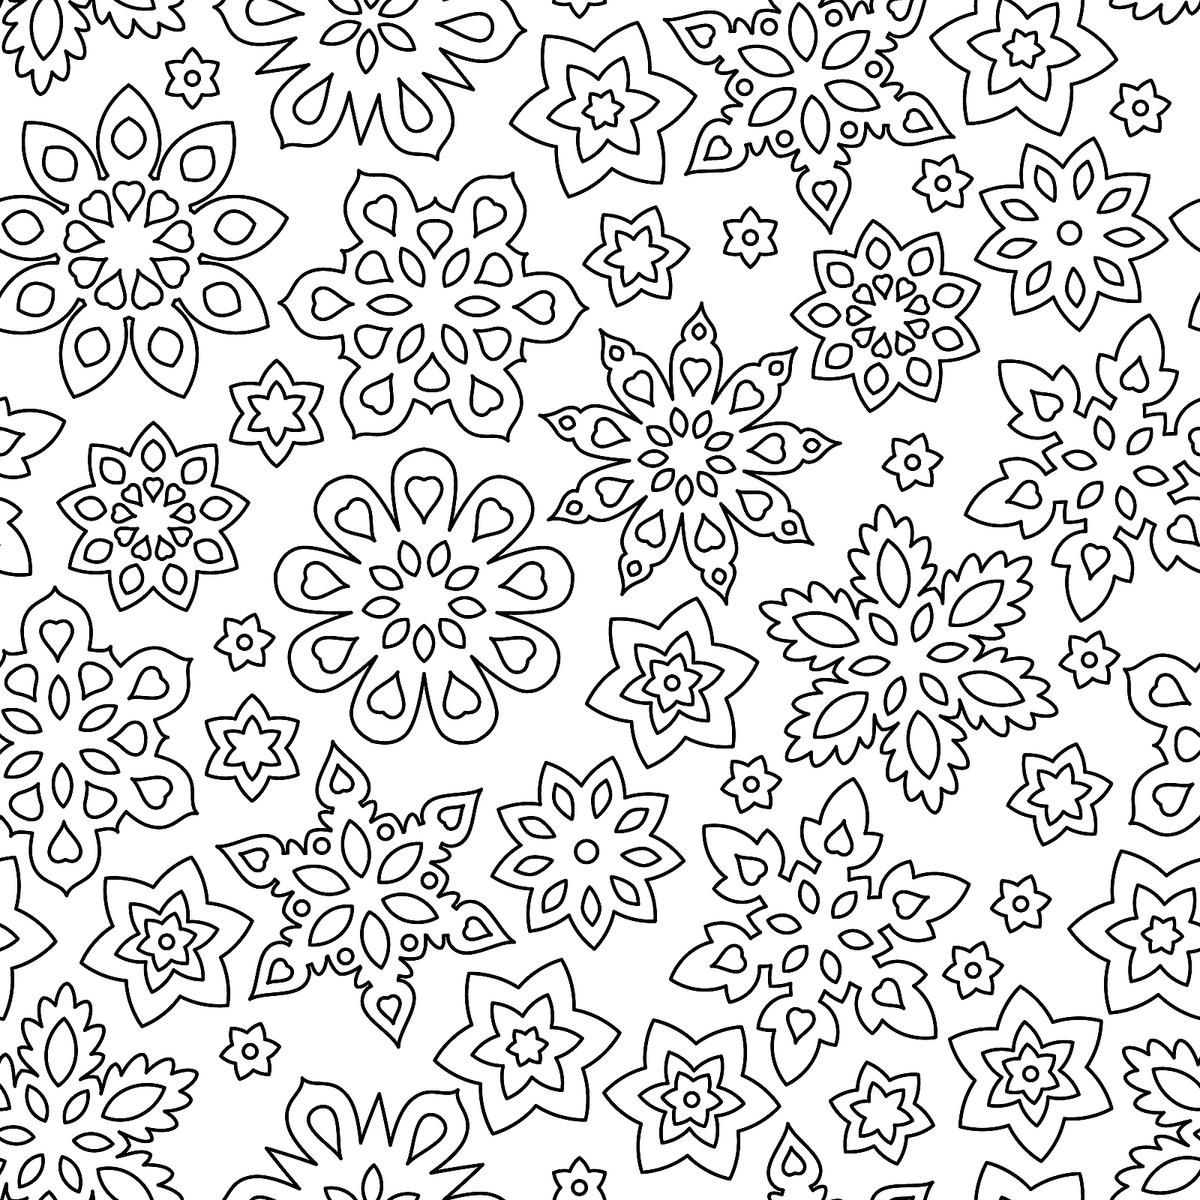 Winter Coloring Pages Printable Collection Winter Coloring Pages Printable Pictures Sabadaphnecottage